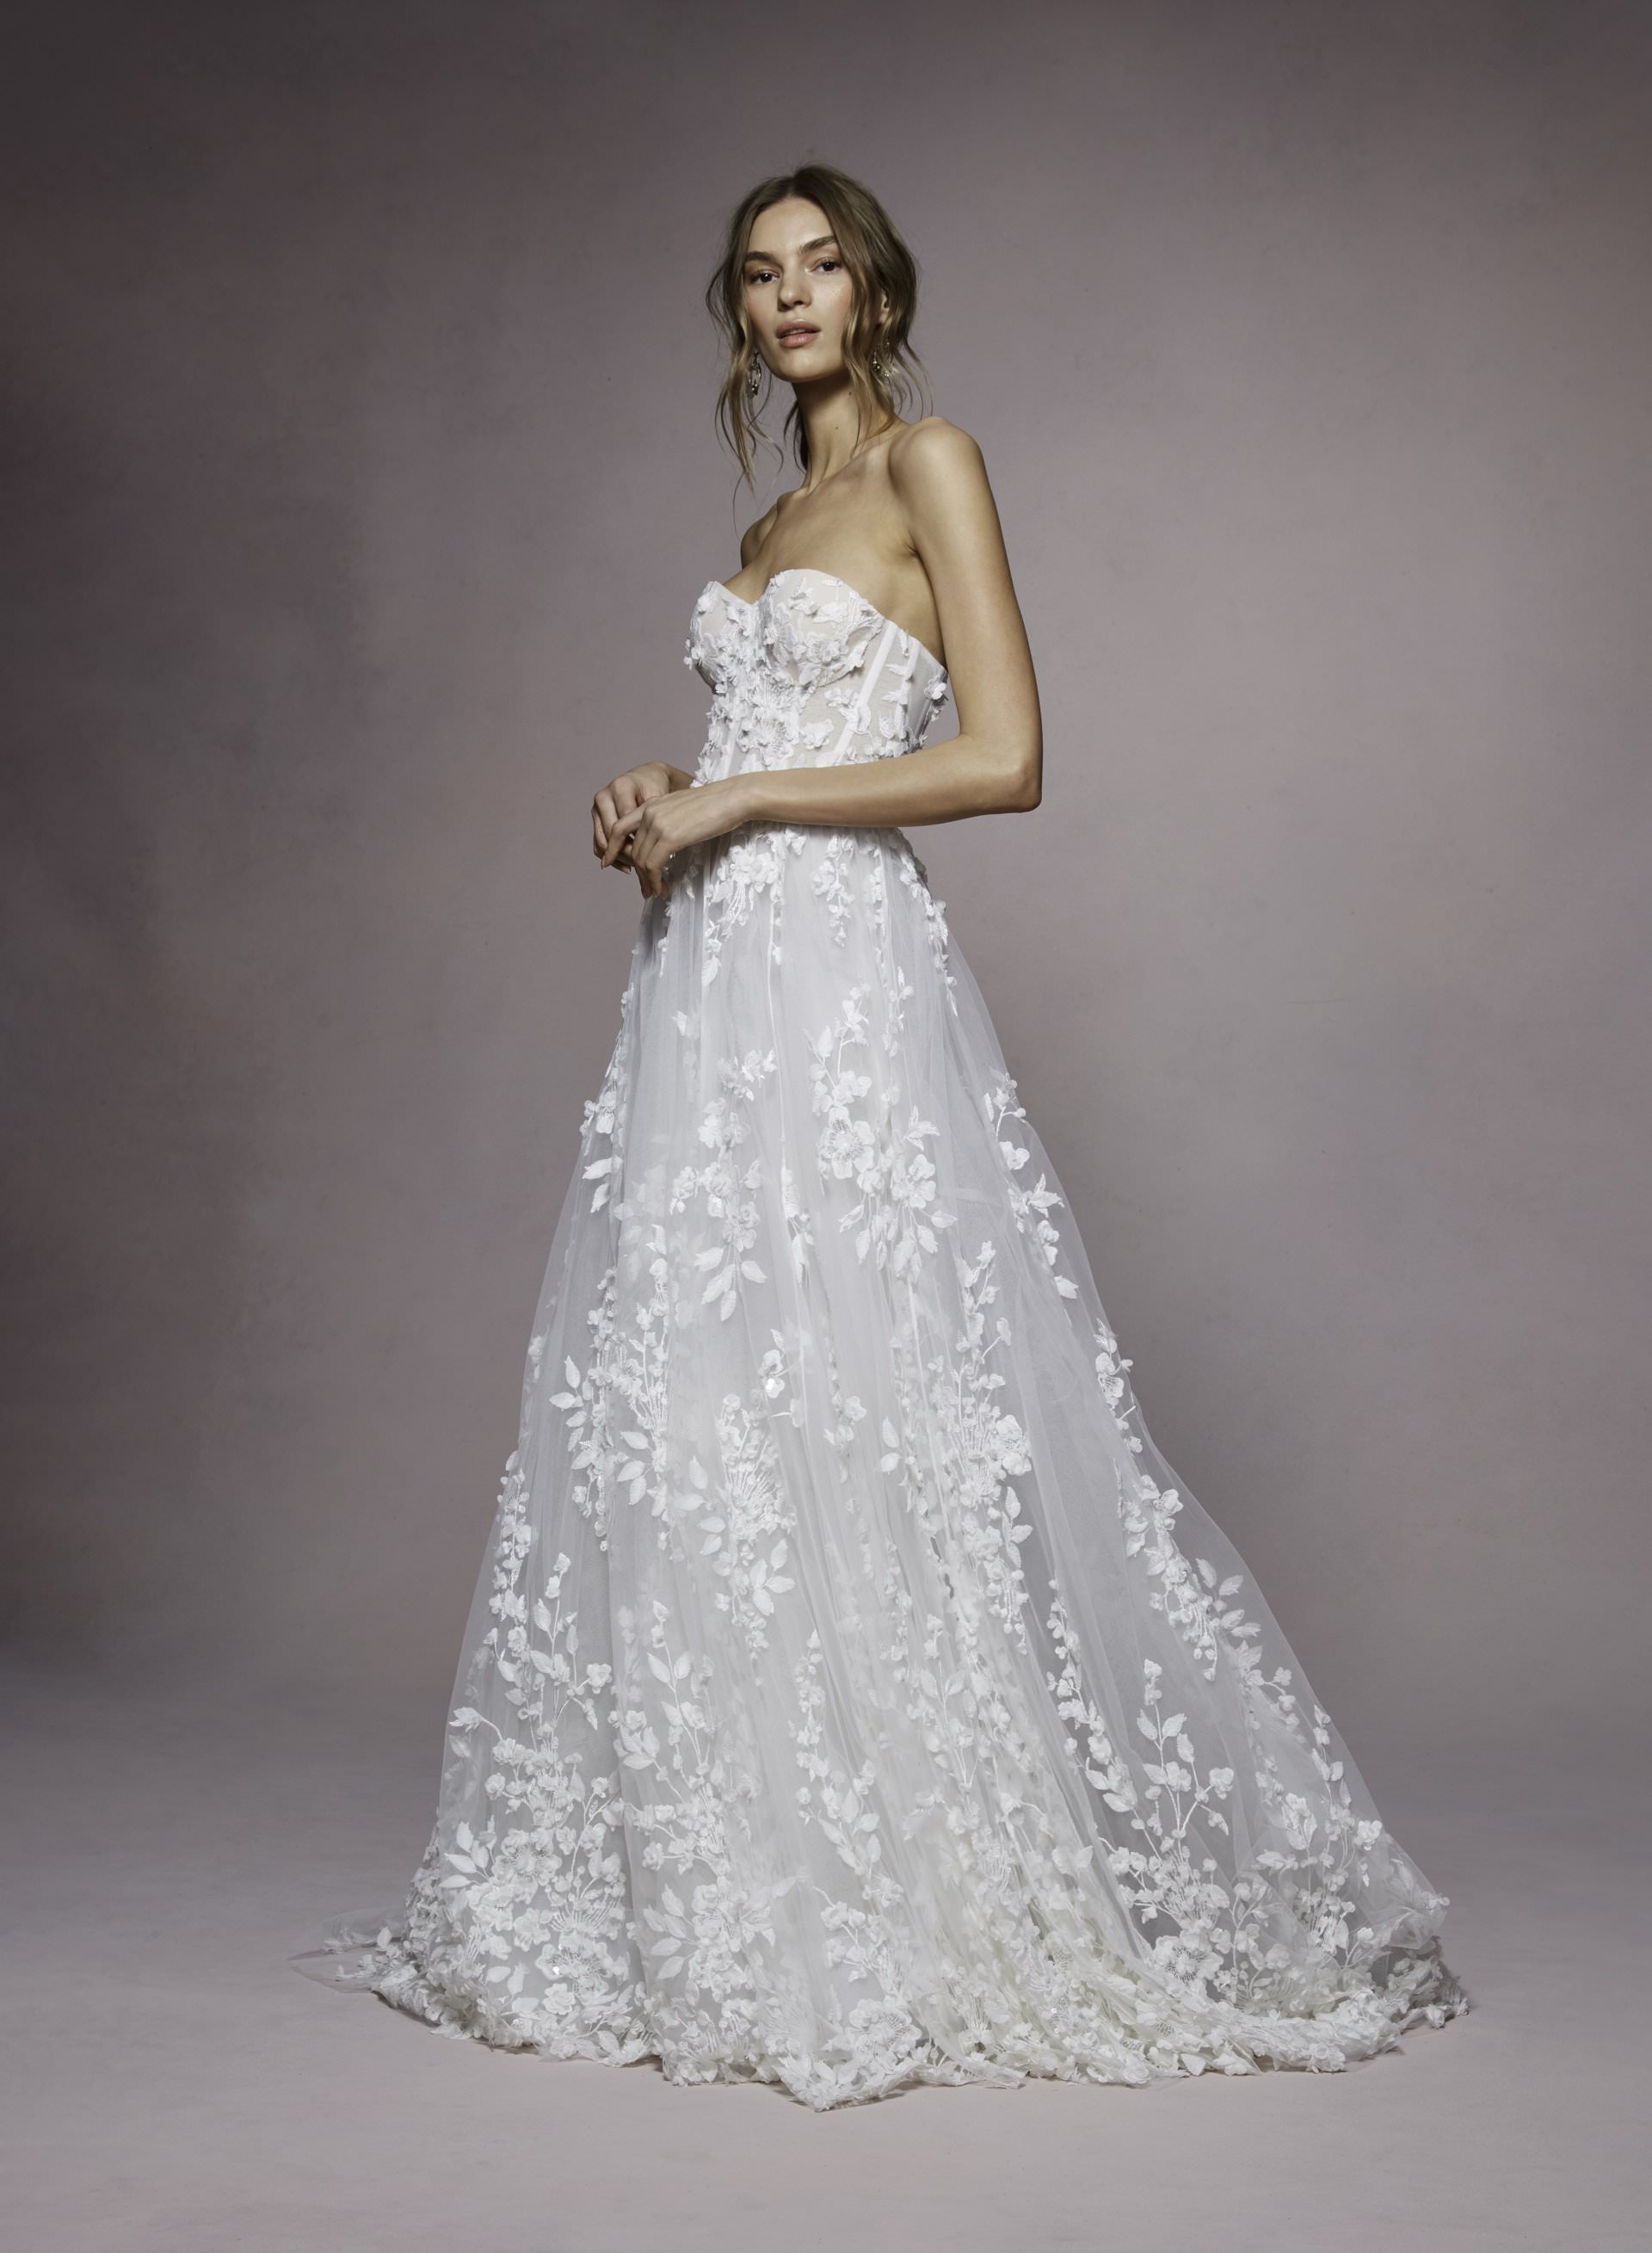 Bailey by Marchesa Notte. Marchesa at The White Flower BRidal Boutique.